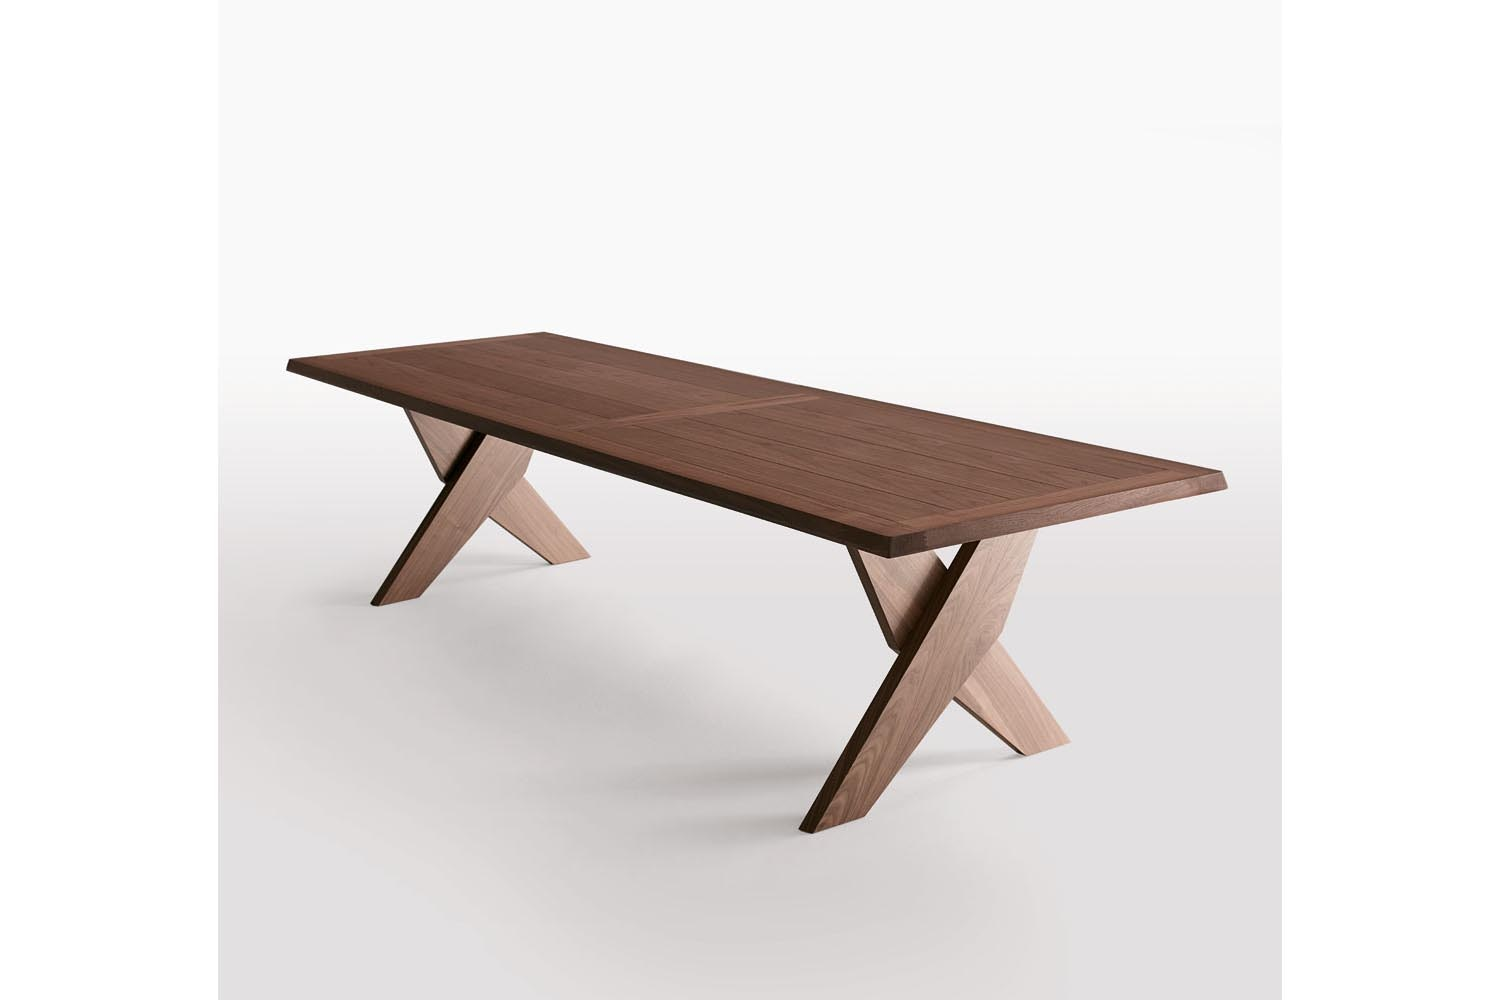 Plato Table by Antonio Citterio for Maxalto